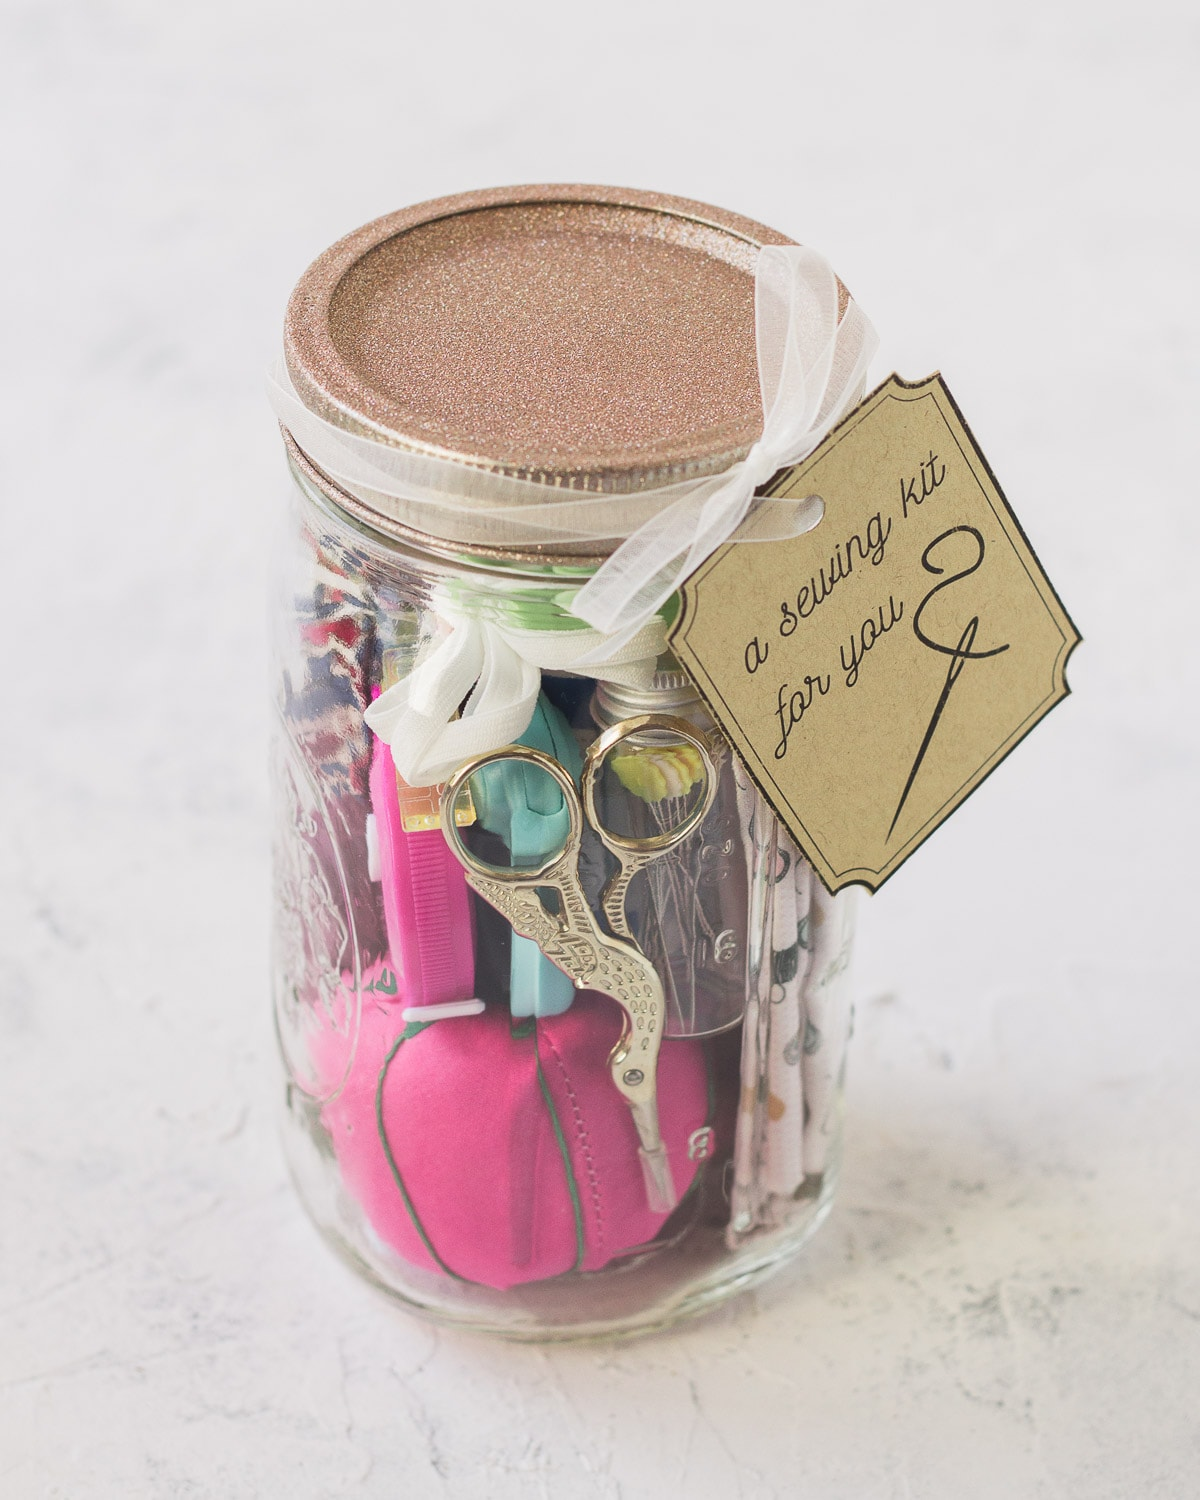 A mason jar sewing kit topped with a glittery lid.